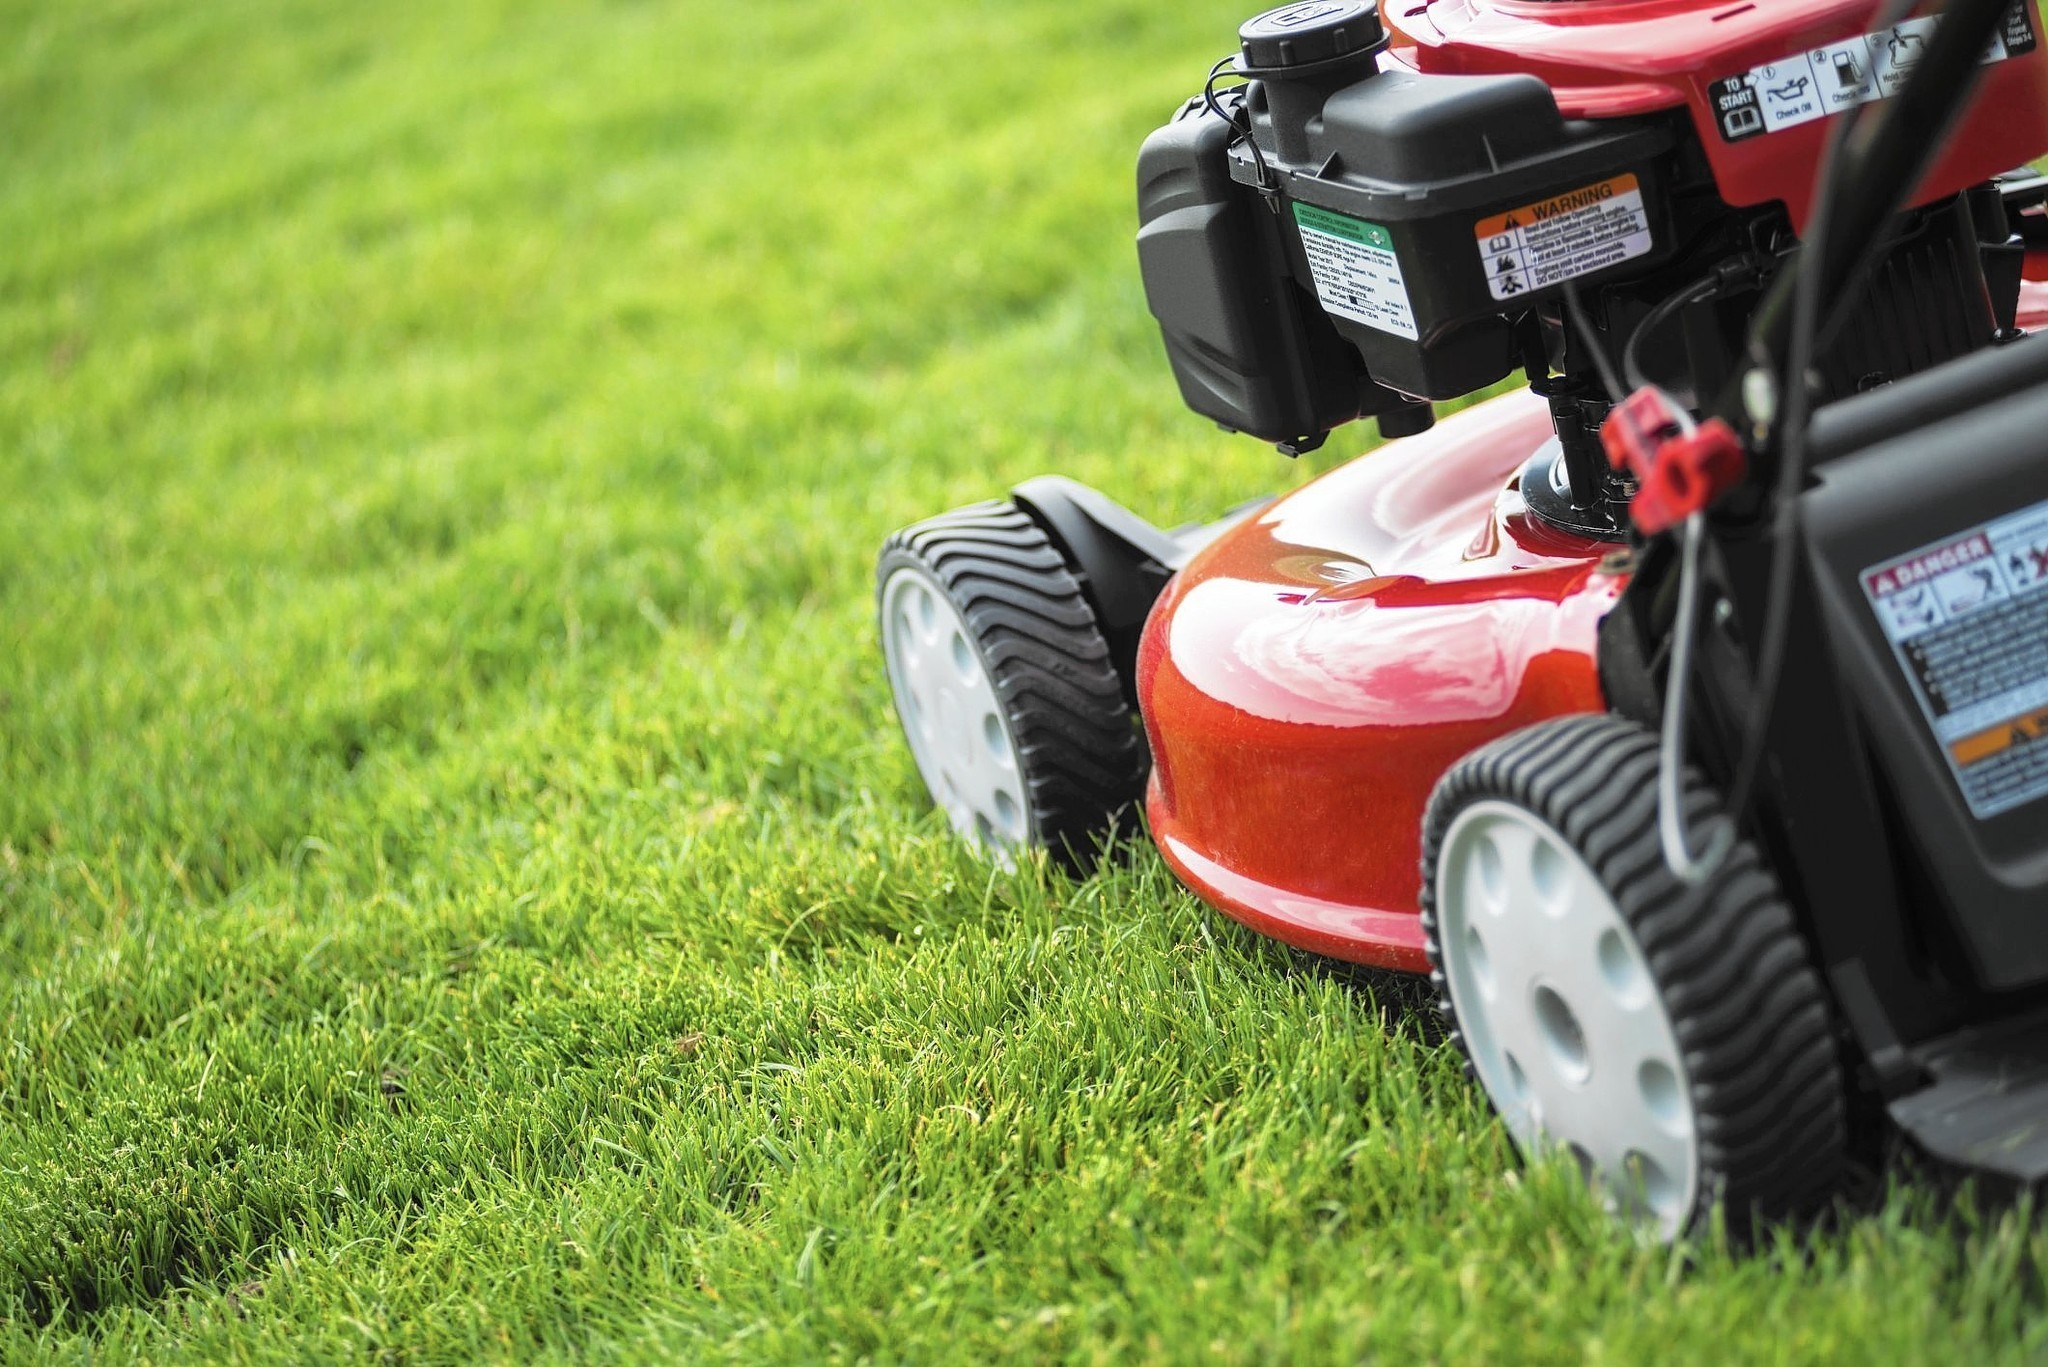 New Lawn Mowers Are Easier To Use  Quieter